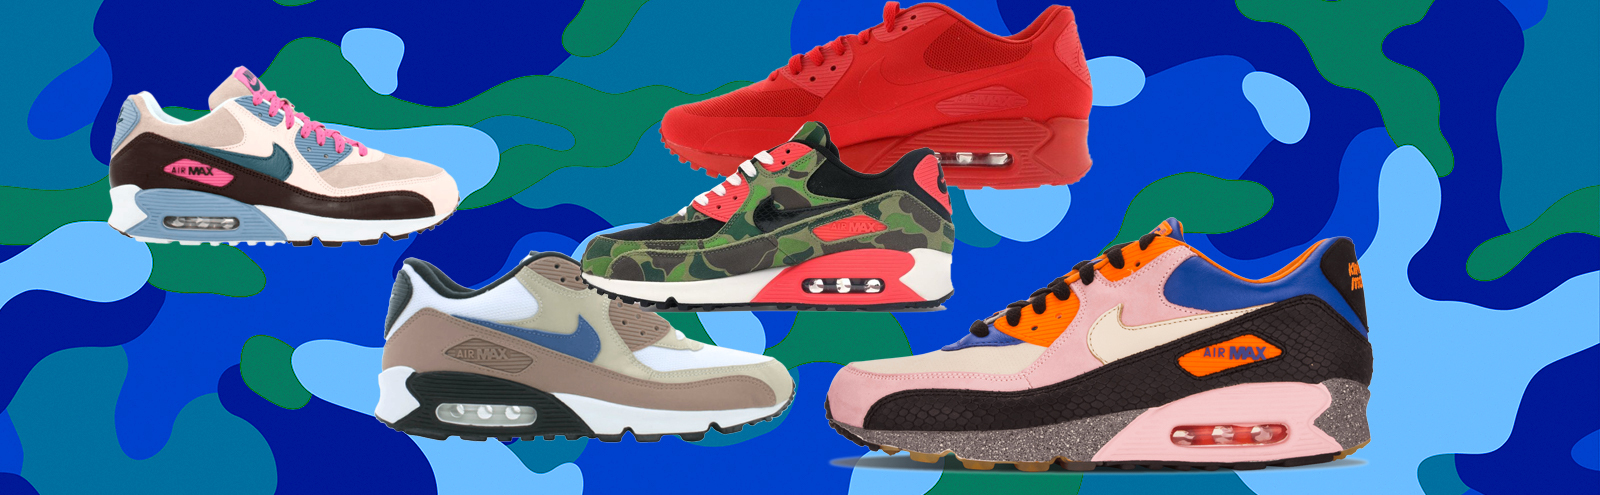 best air maxes of all time